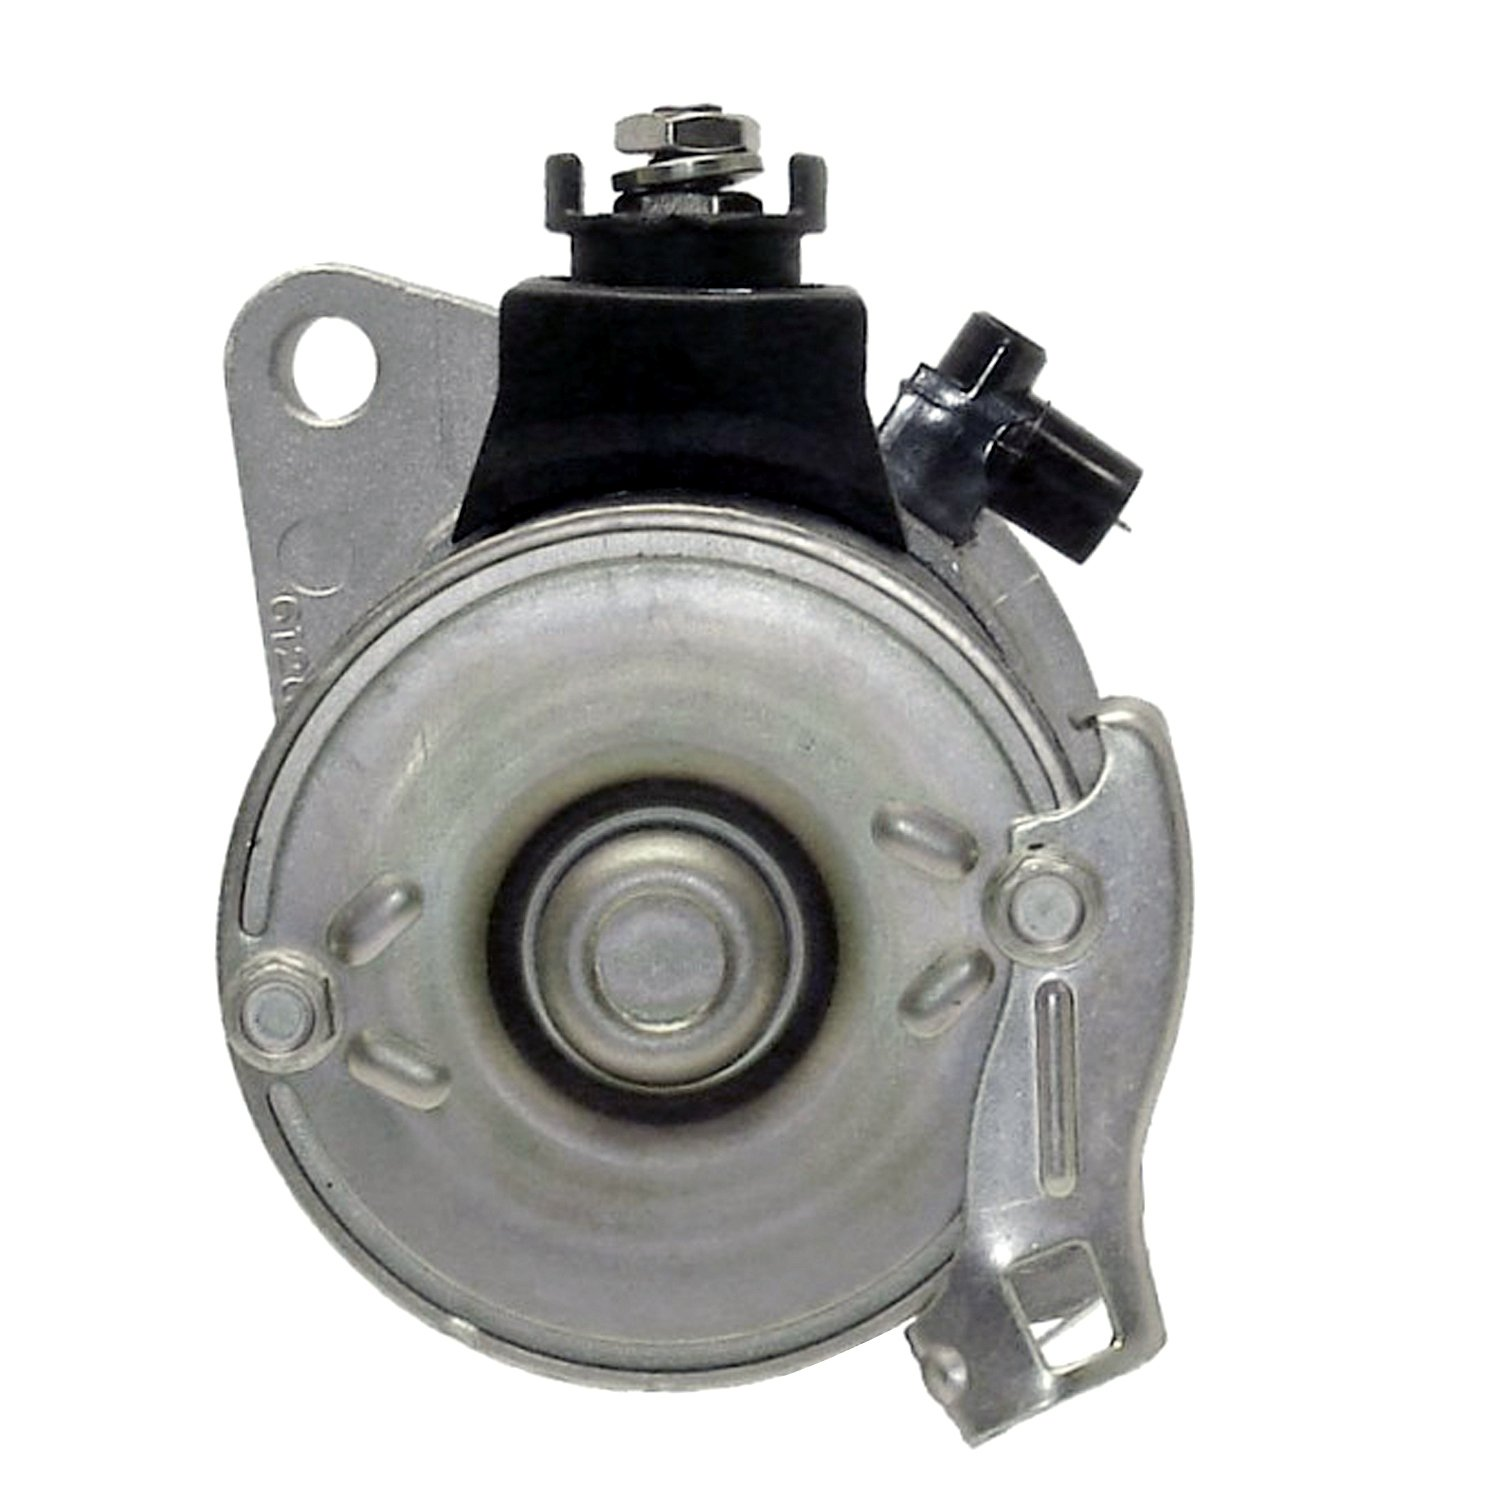 Remanufactured 336-1955-ACD ACDelco 336-1955 Professional Starter